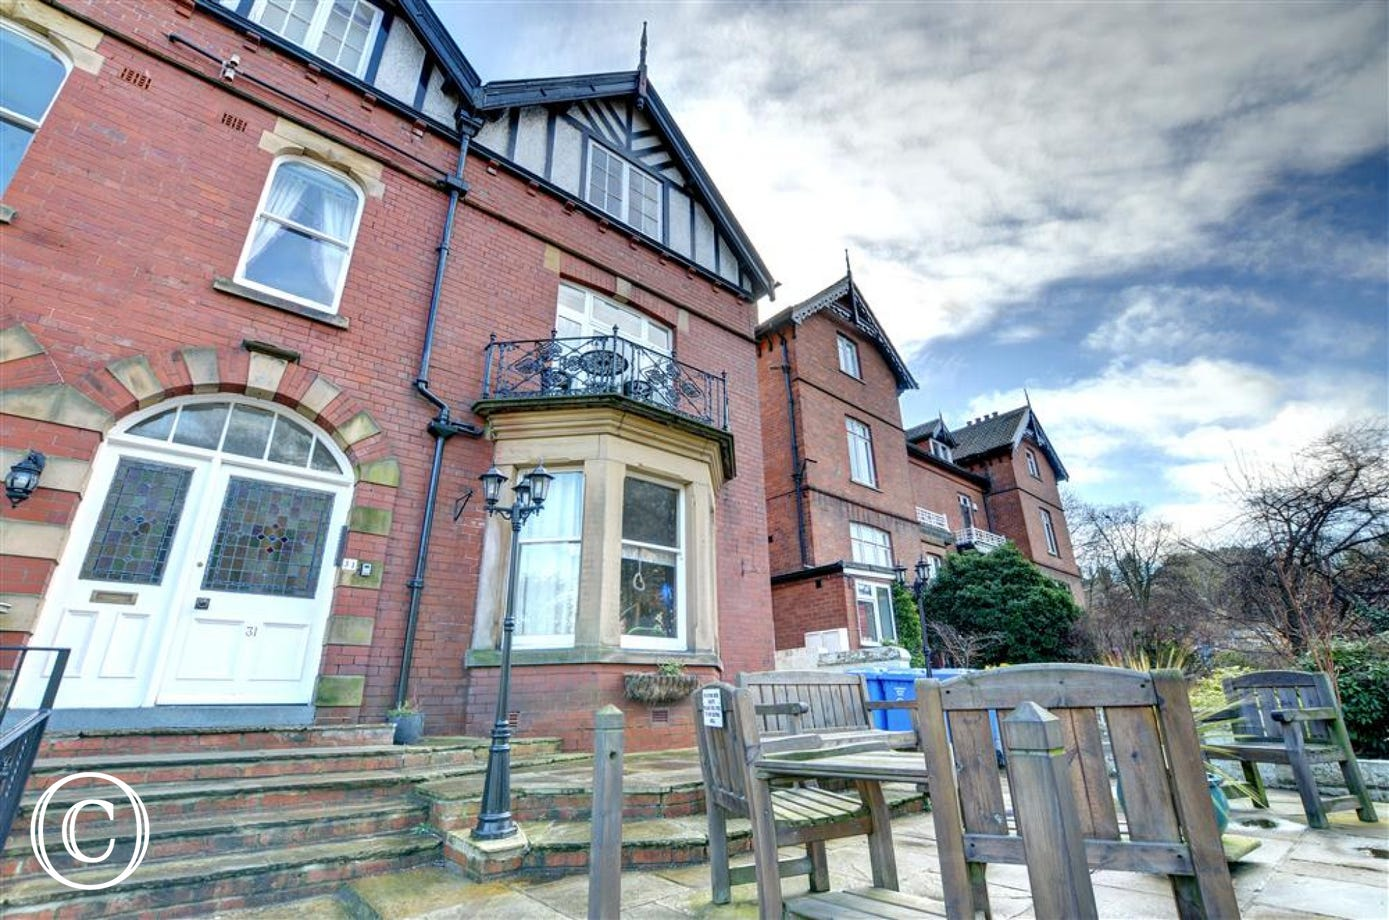 First floor flat in a central Whitby location.